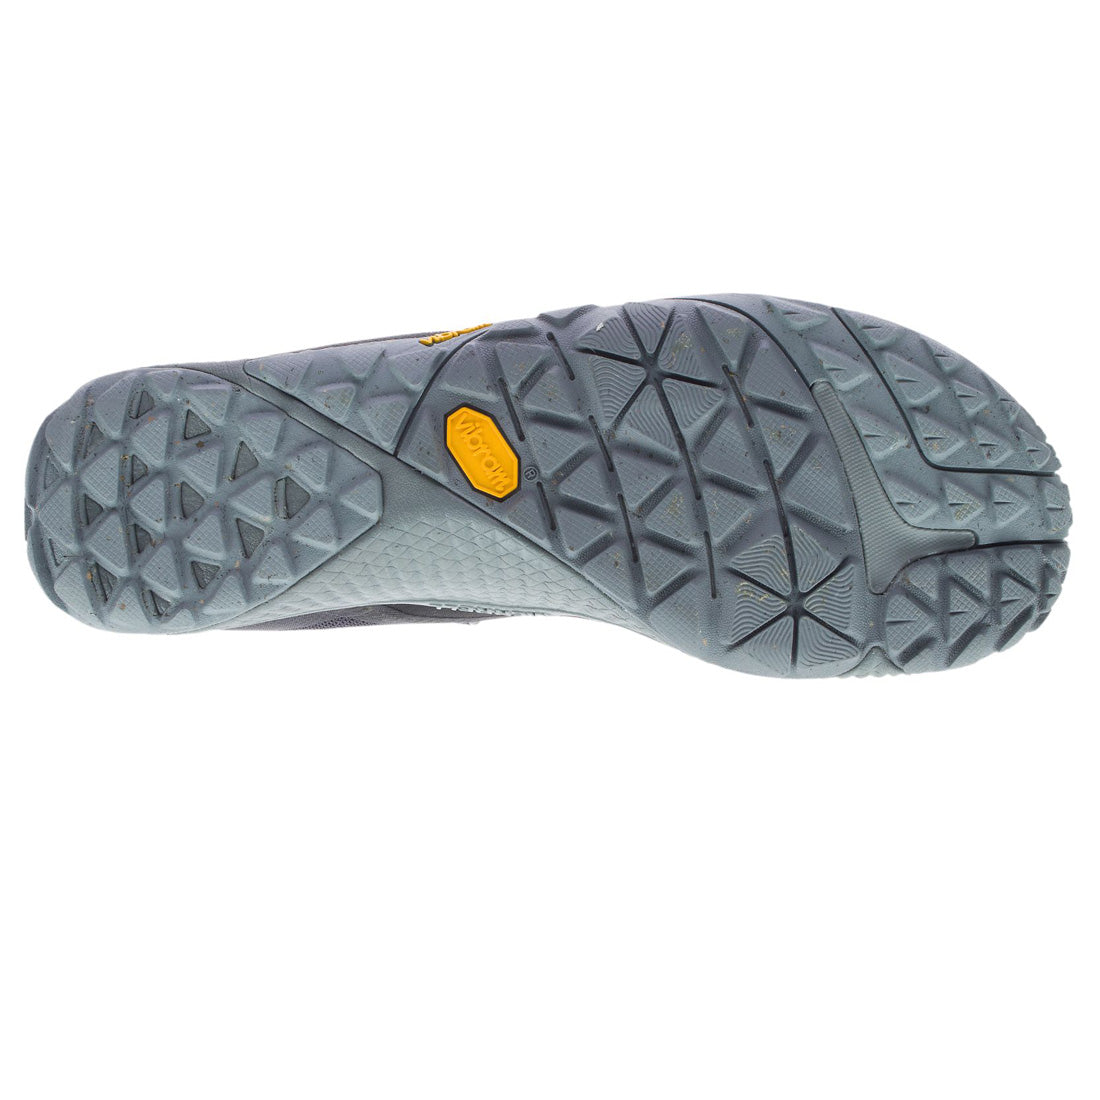 Trail Glove 6 de Merrell color black. Vista general suela Vibram